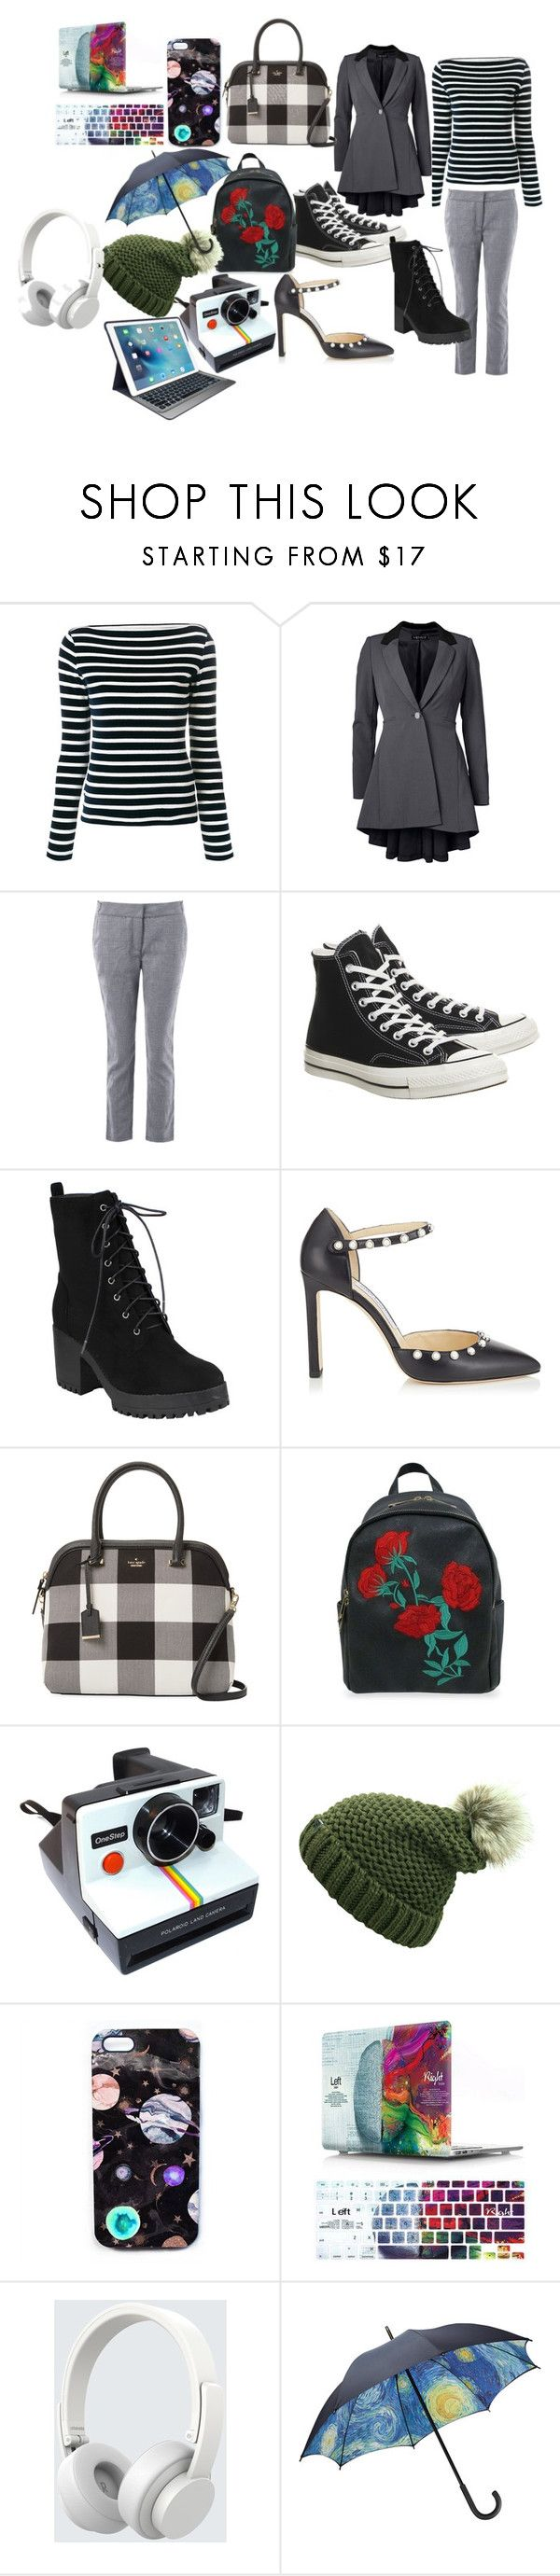 """My First Post"" by darkheart04 ❤ liked on Polyvore featuring Faith Connexion, Venus, Converse, Jimmy Choo, Kate Spade, Polaroid, Nikki Strange, Logitech, Urbanista and plus size clothing"